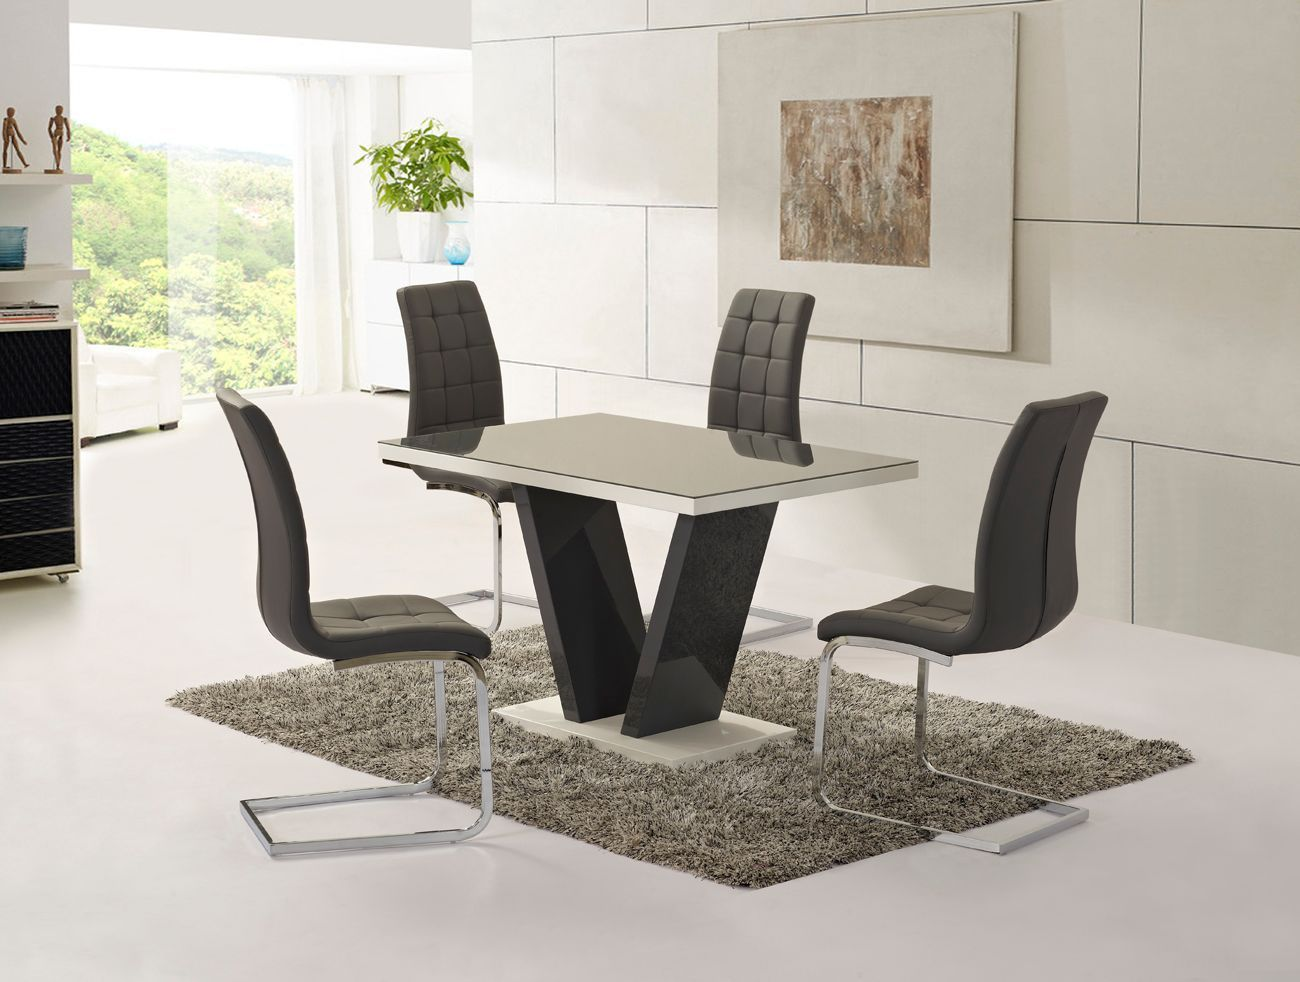 grey high gloss dining table and 4 grey chairs set